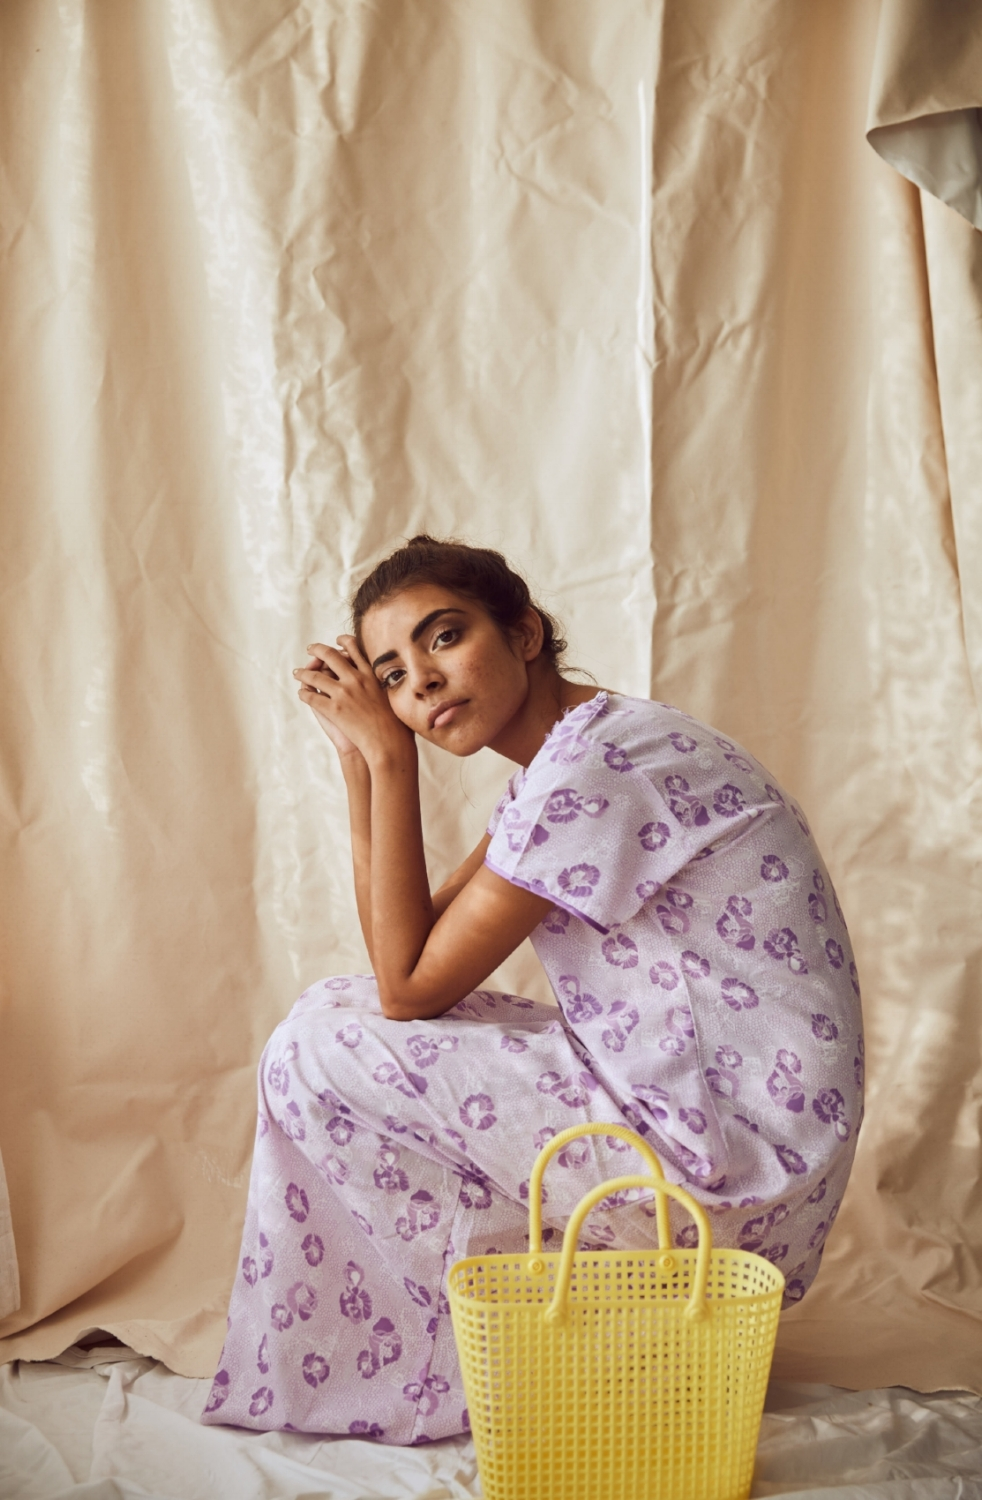 The model wears a soft mauve nightie with a delicately sprinkled tulip pattern and mother-of-pearl buttons, accessorized with a lemon yellow plastic lunch basket.